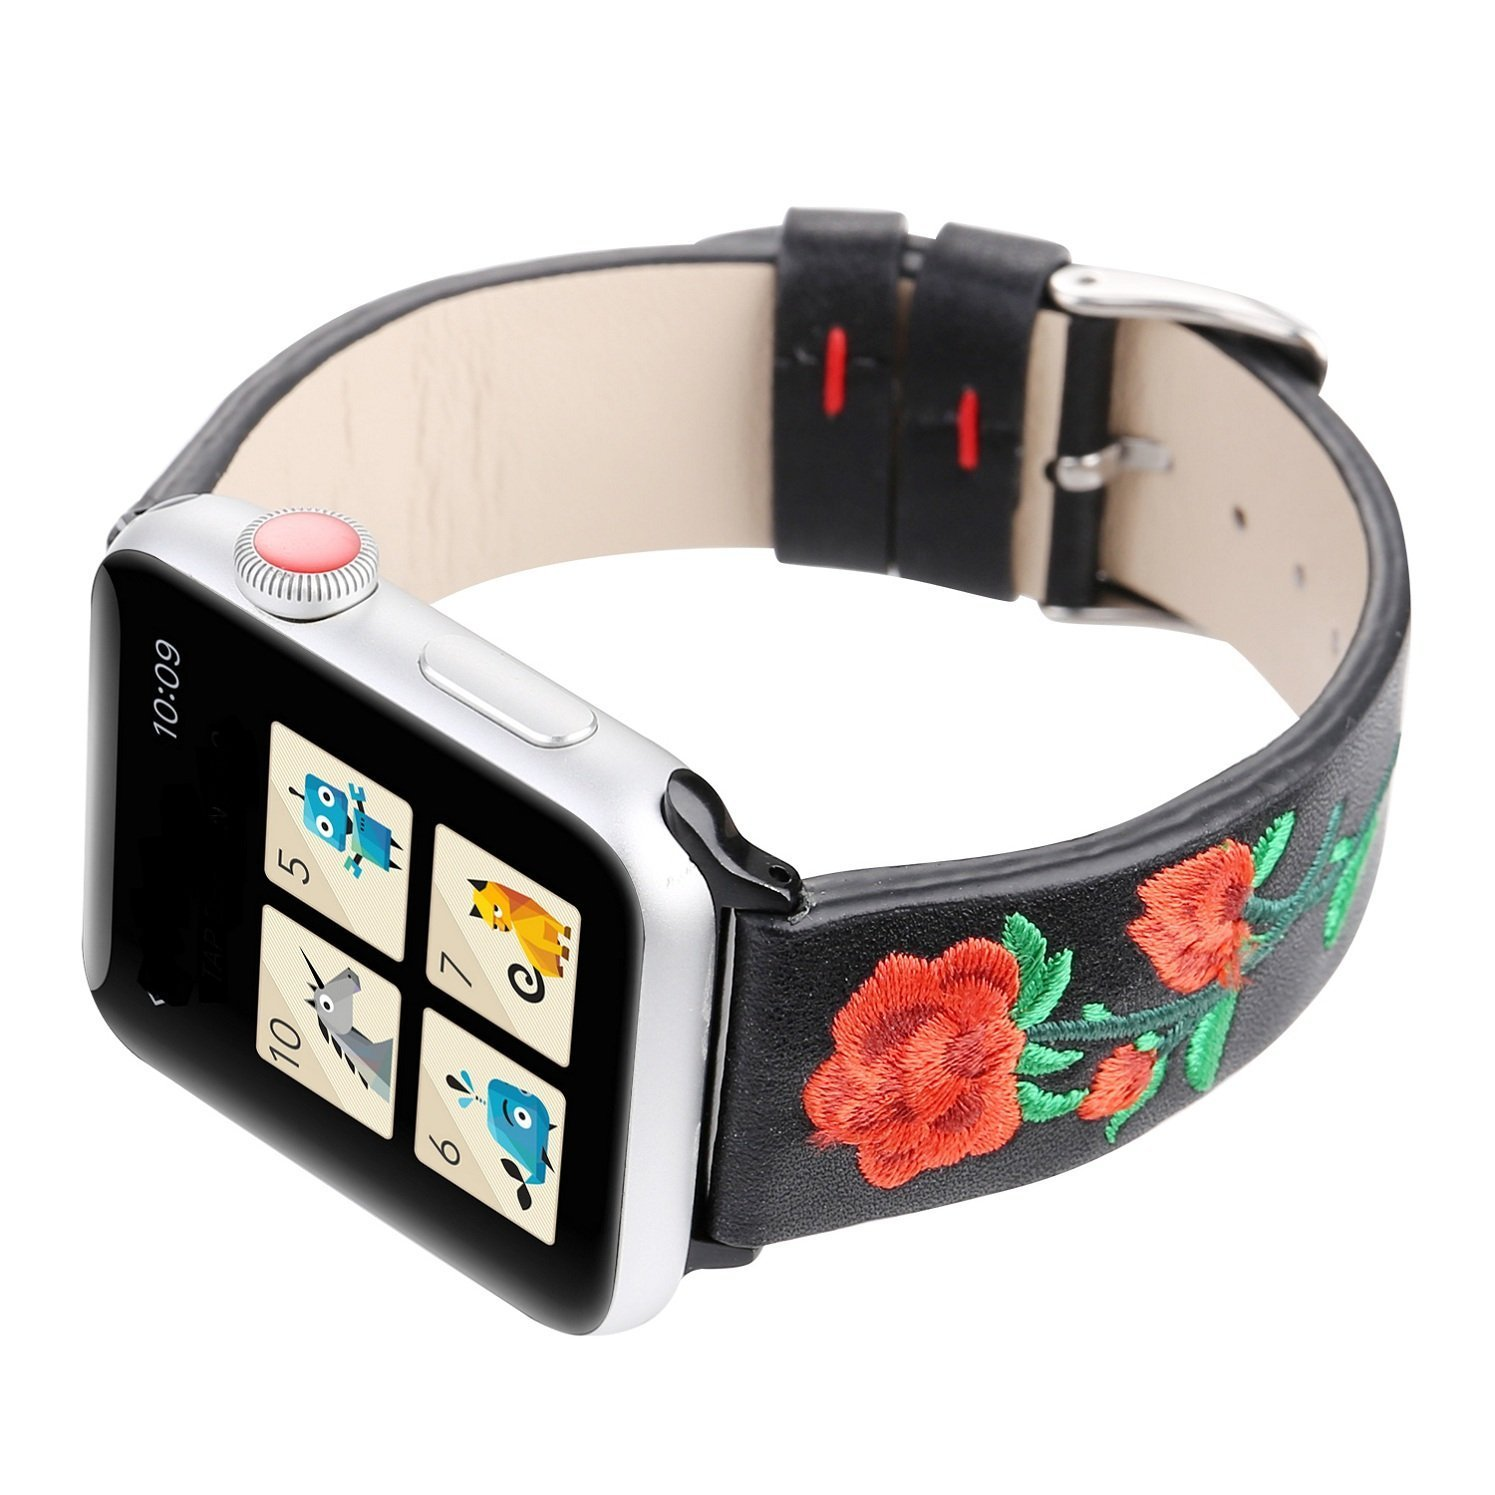 Juzzhou Band For Apple Watch iWatch Series 1/2 / 3 Sport Edition Leather Embroid Flower Watchband Replacement Bracelet Wristband Wriststrap Wrist Strap Guard With Clasp For Woman Lady Black 42mm